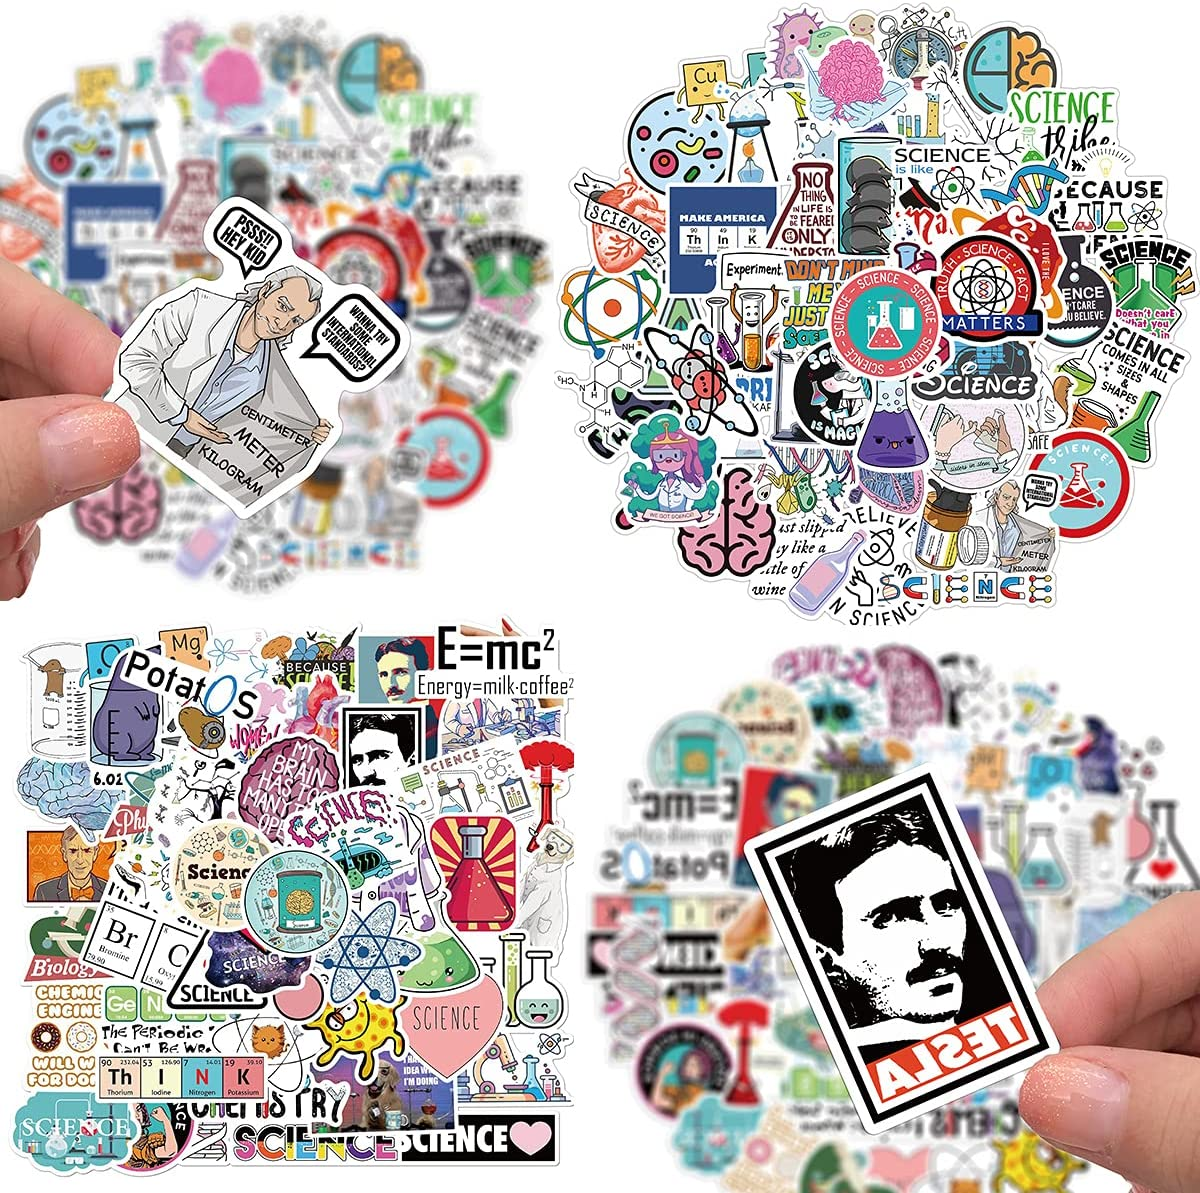 100 PCS Student Science Laboratory Stickers Physics Chemistry Biology Experiment Science VSCO Stickers Waterproof Vinyl Stickers Decals for Water Bottle Laptop Luggage for Adults Teens Girls